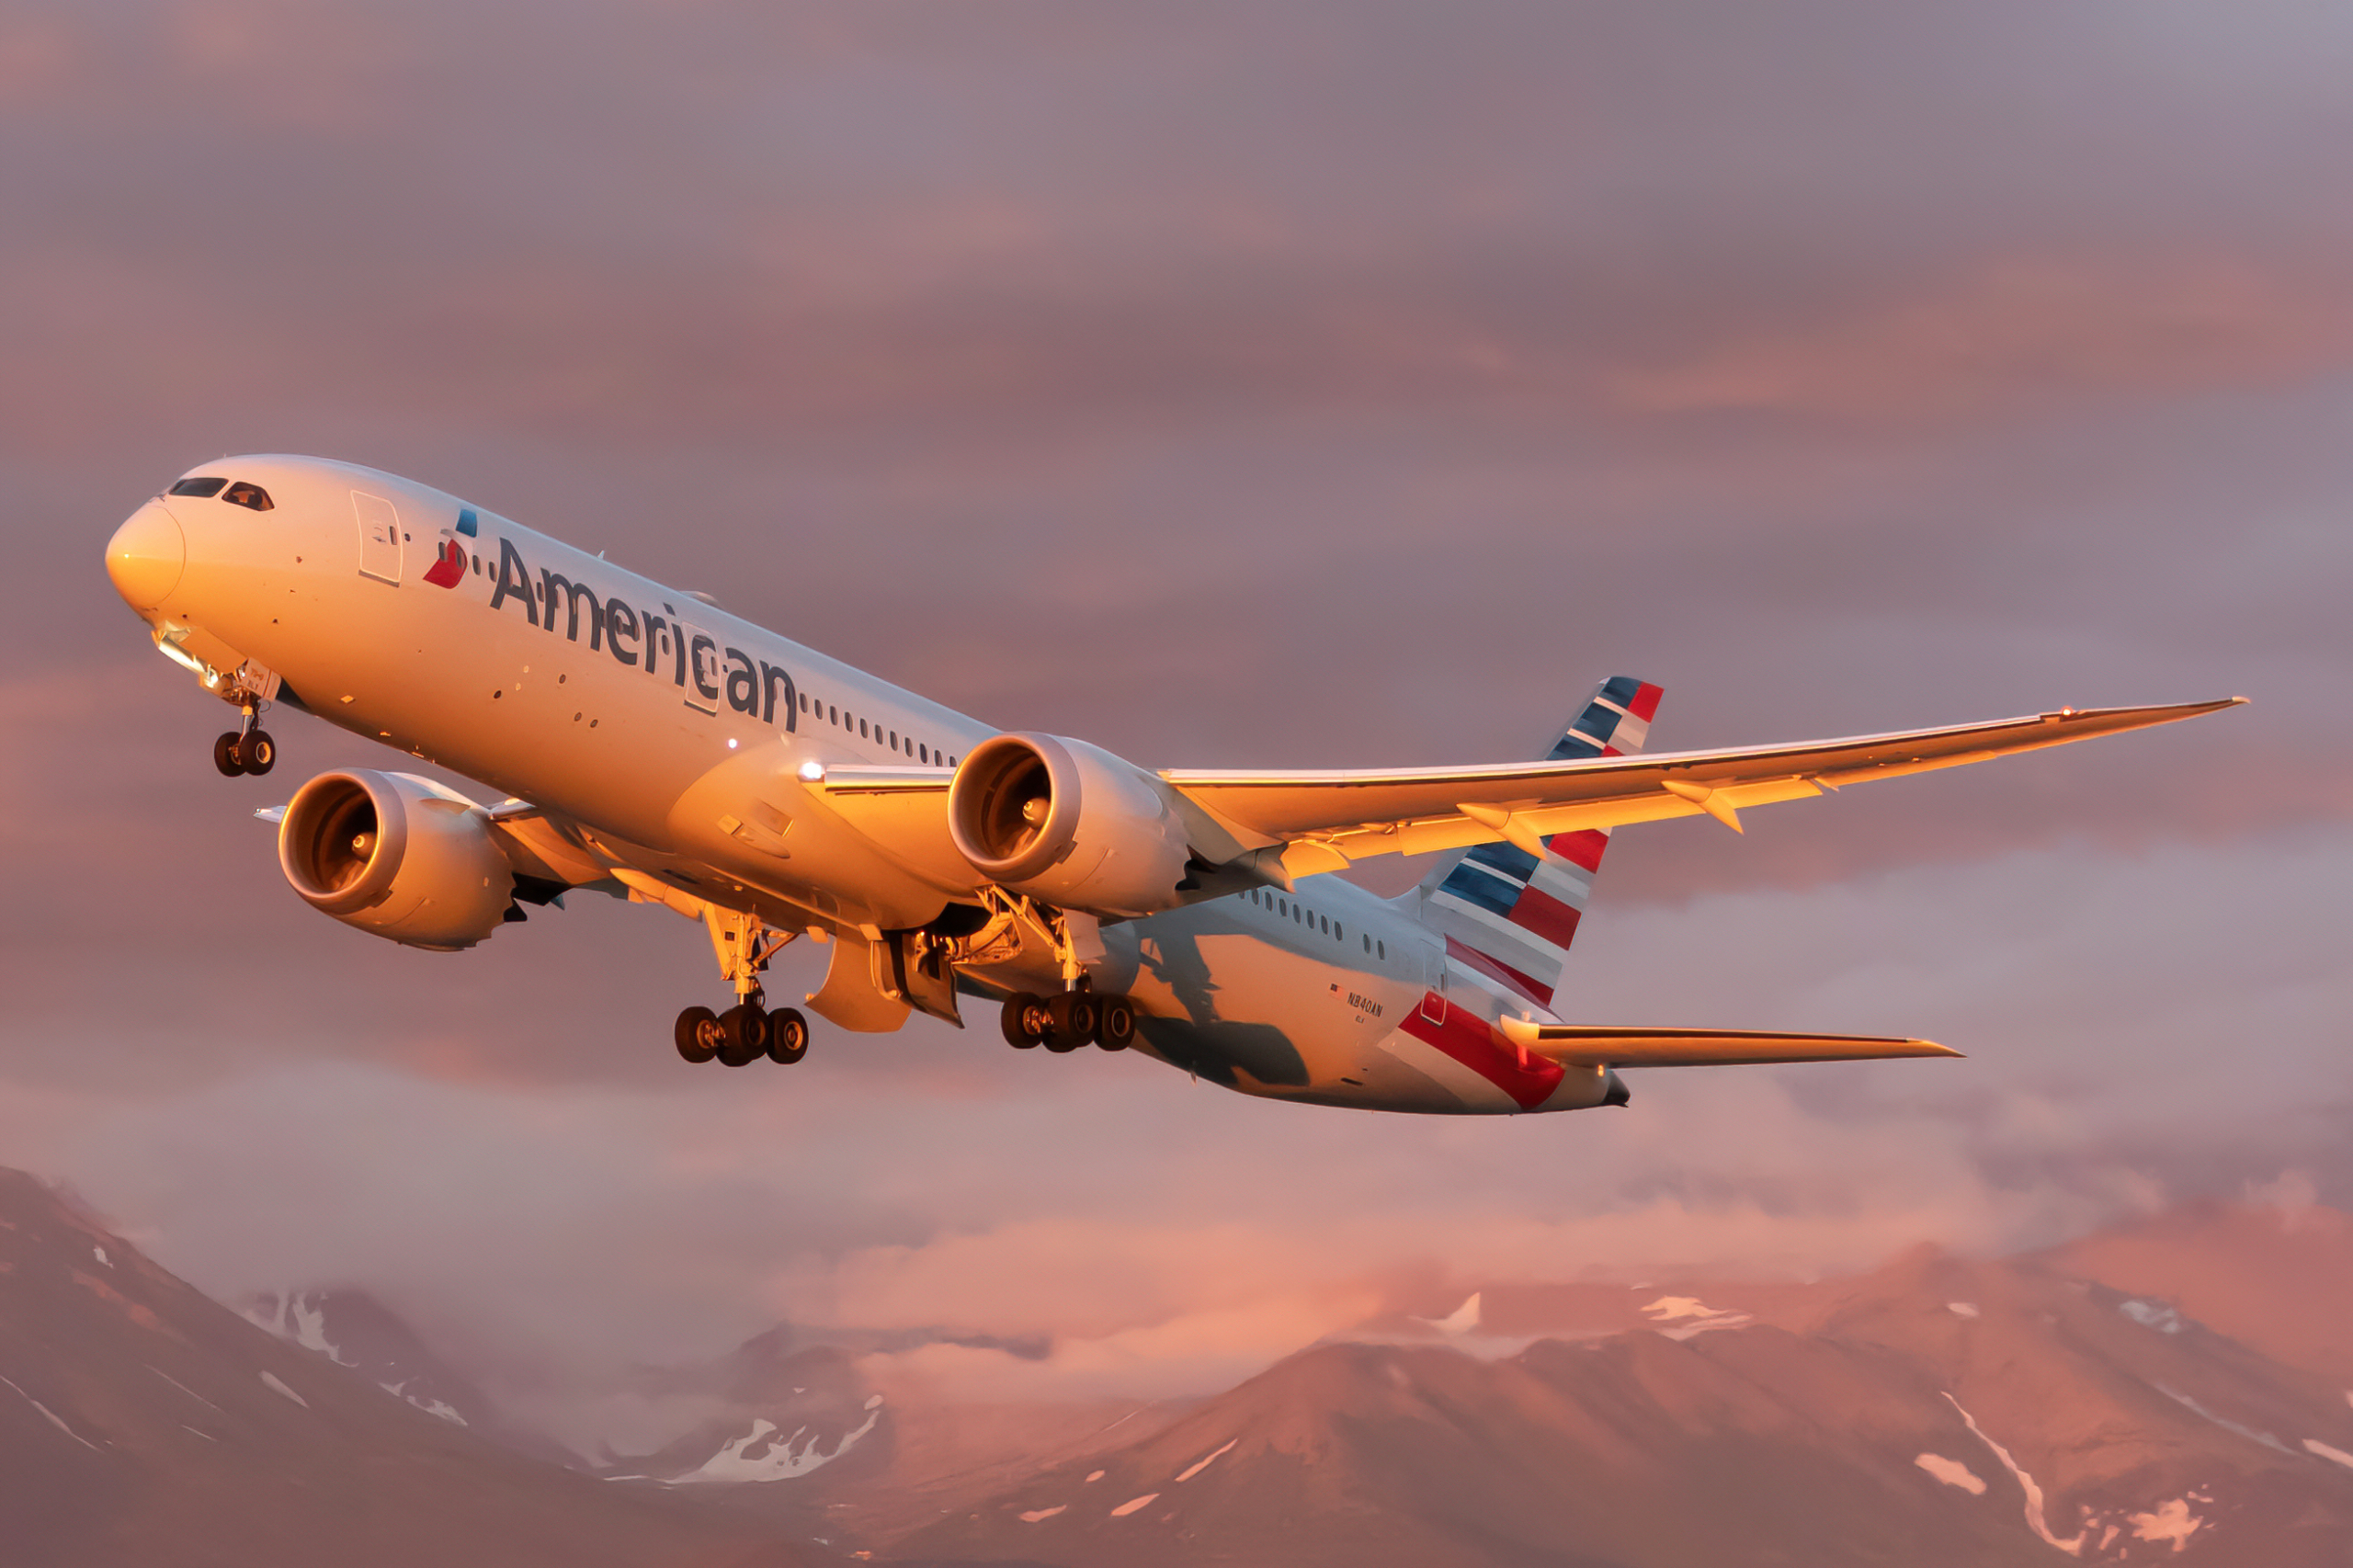 GOL Partners With American Airlines To Link Networks And Loyalty